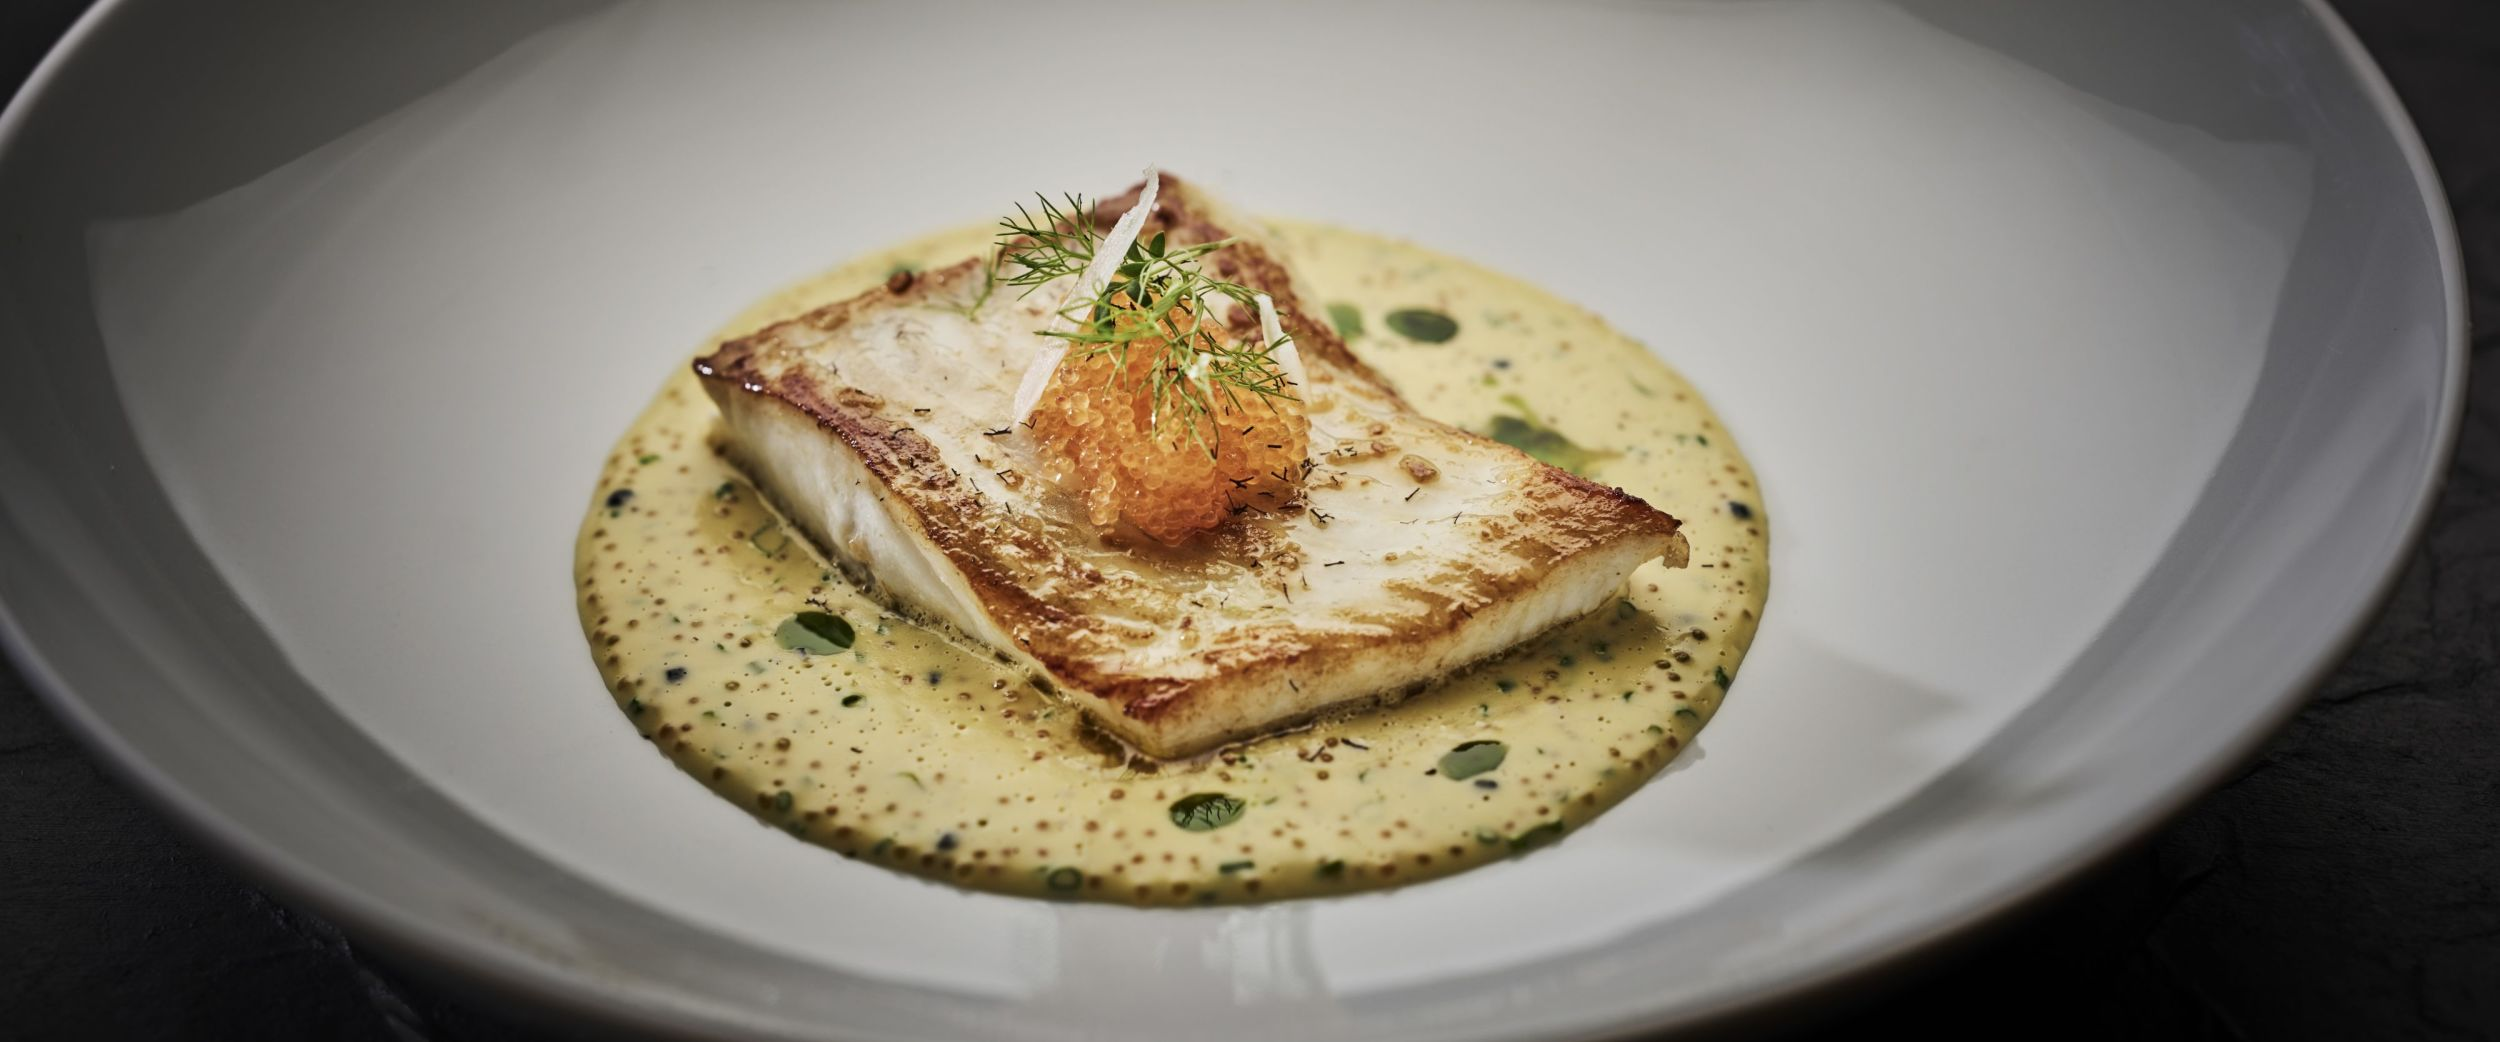 Pan-fried turbot - With caviar and fennel sauce from Hildring Fine Dining, photo by Tom Haga